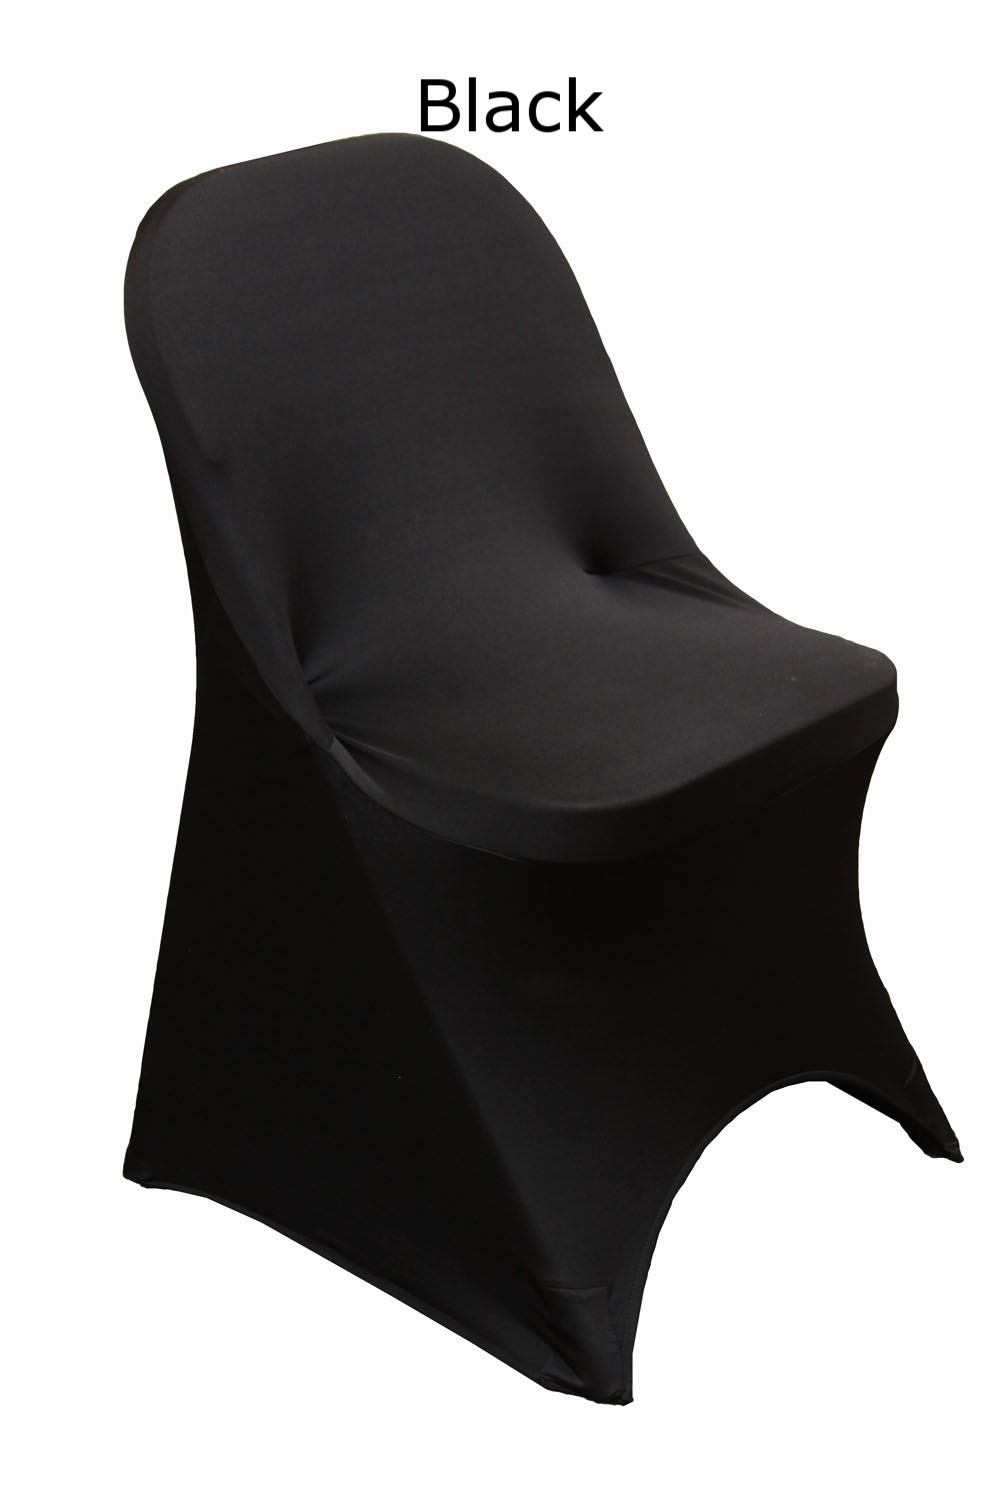 Chair Cover Stretch Black.jpg